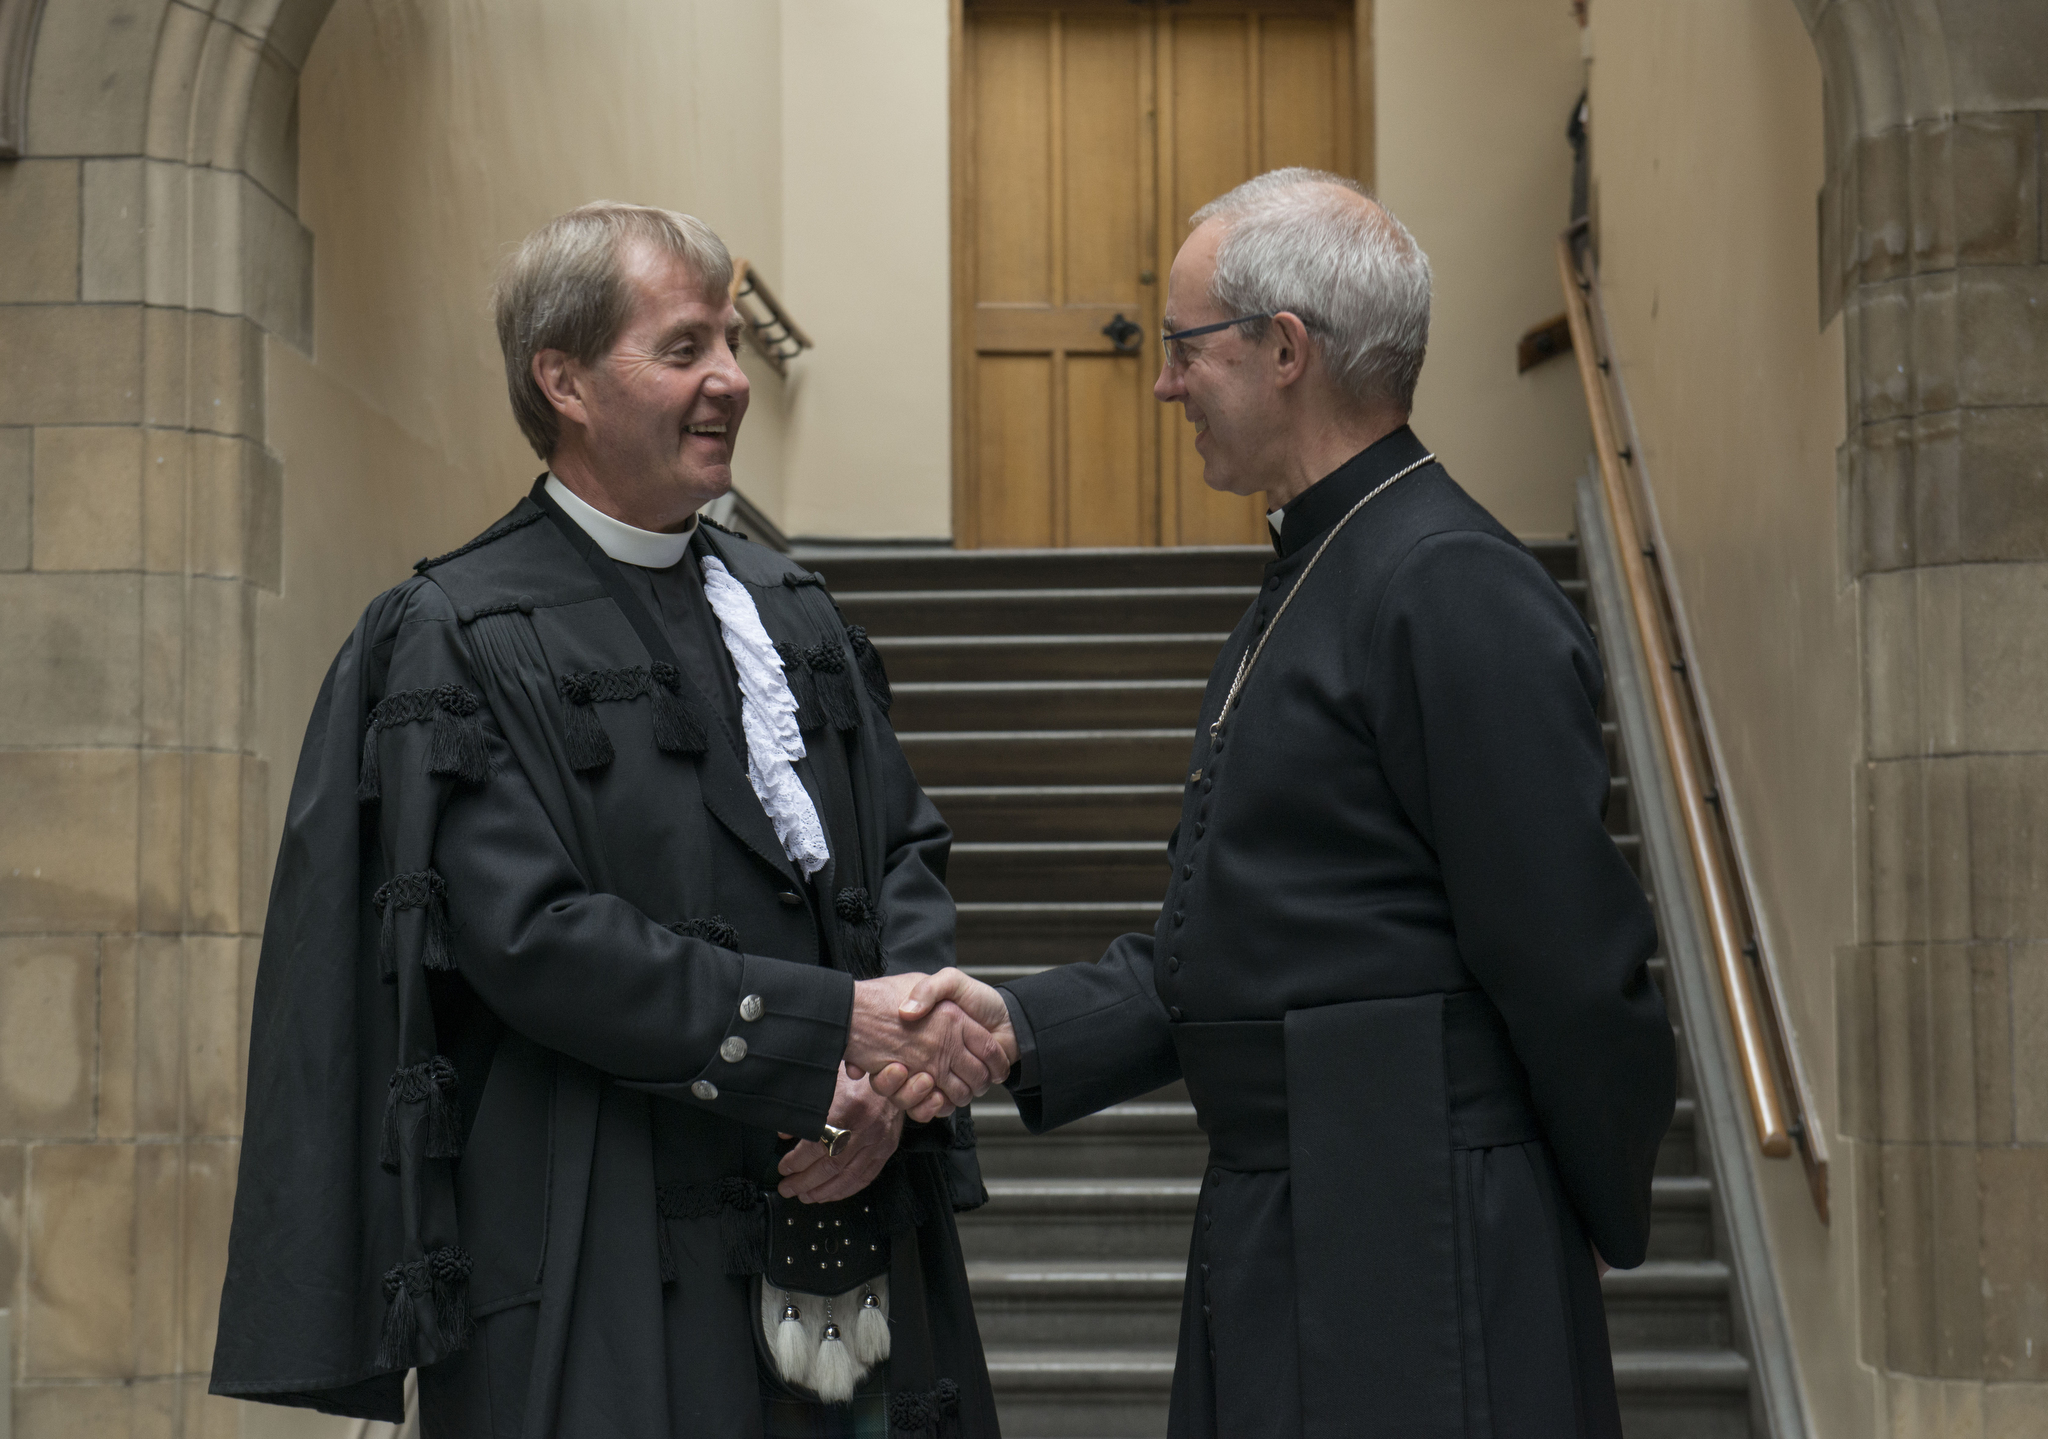 Most Revd Justin Welby, Archbishop of Canterbury has become the first head of the Church of England to take part in a debate at the General Assembly of the Church of Scotland.